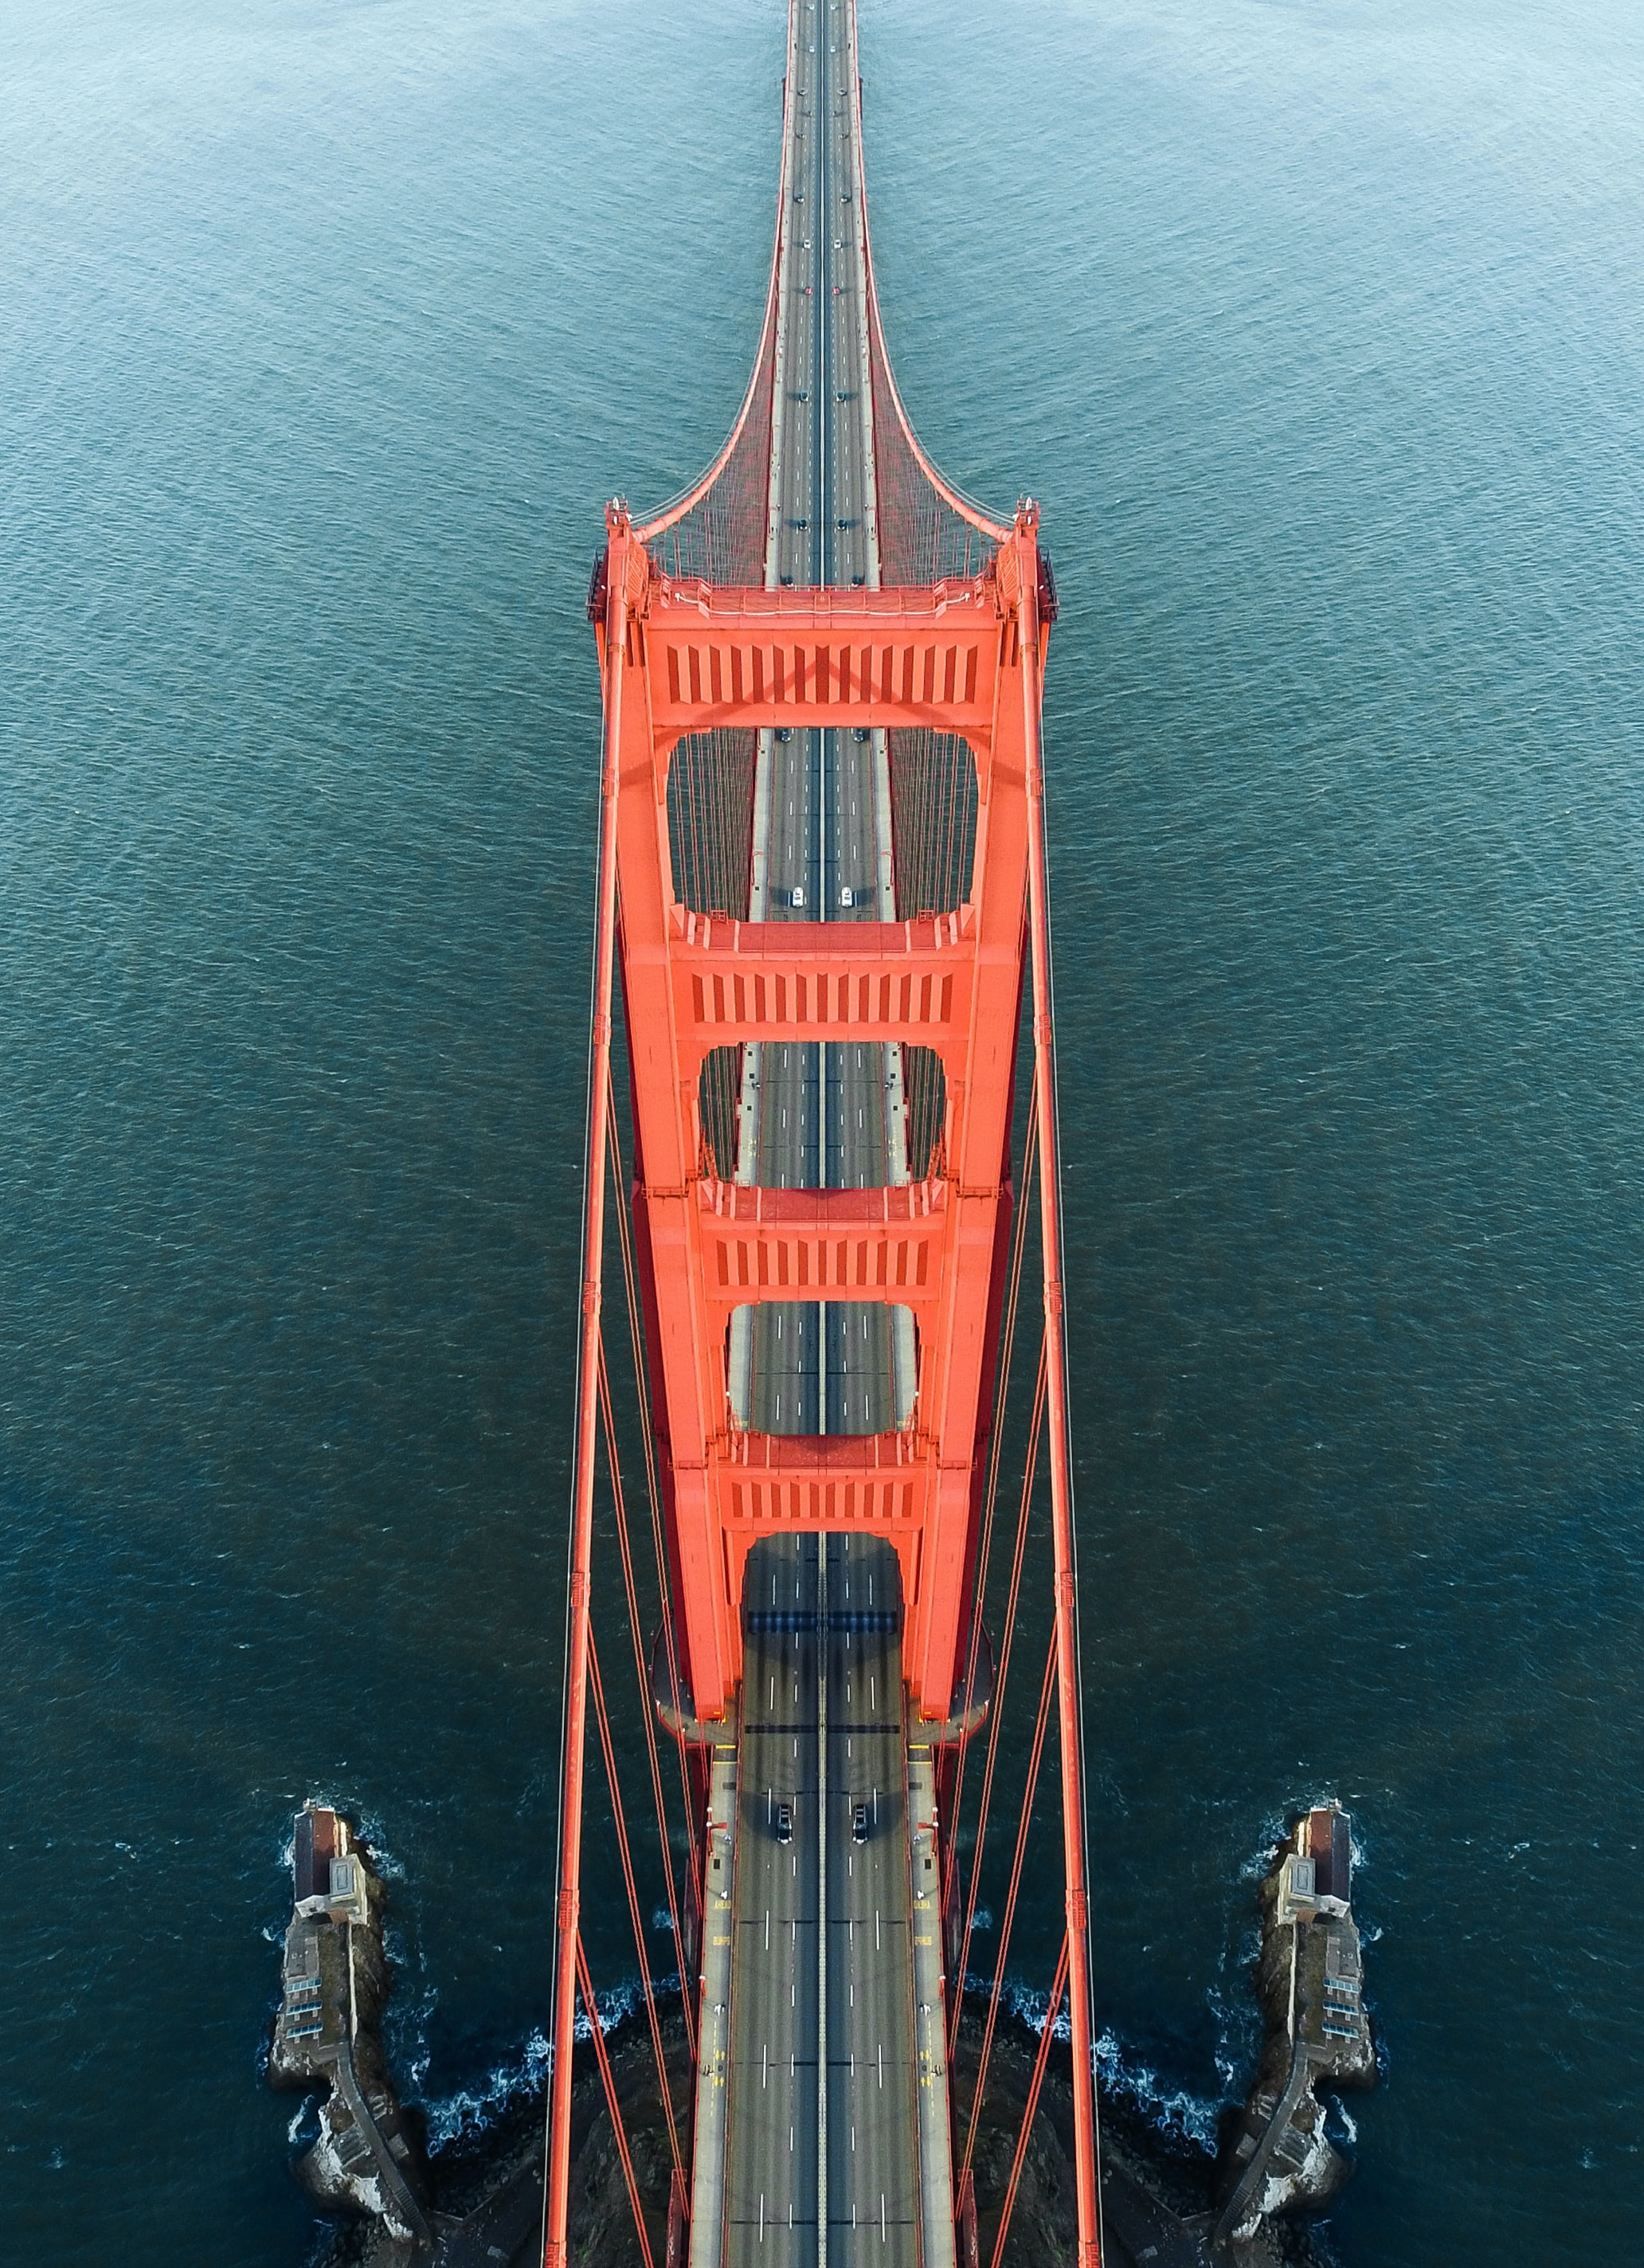 aerial photo of Golden Gate Bridge during daytime